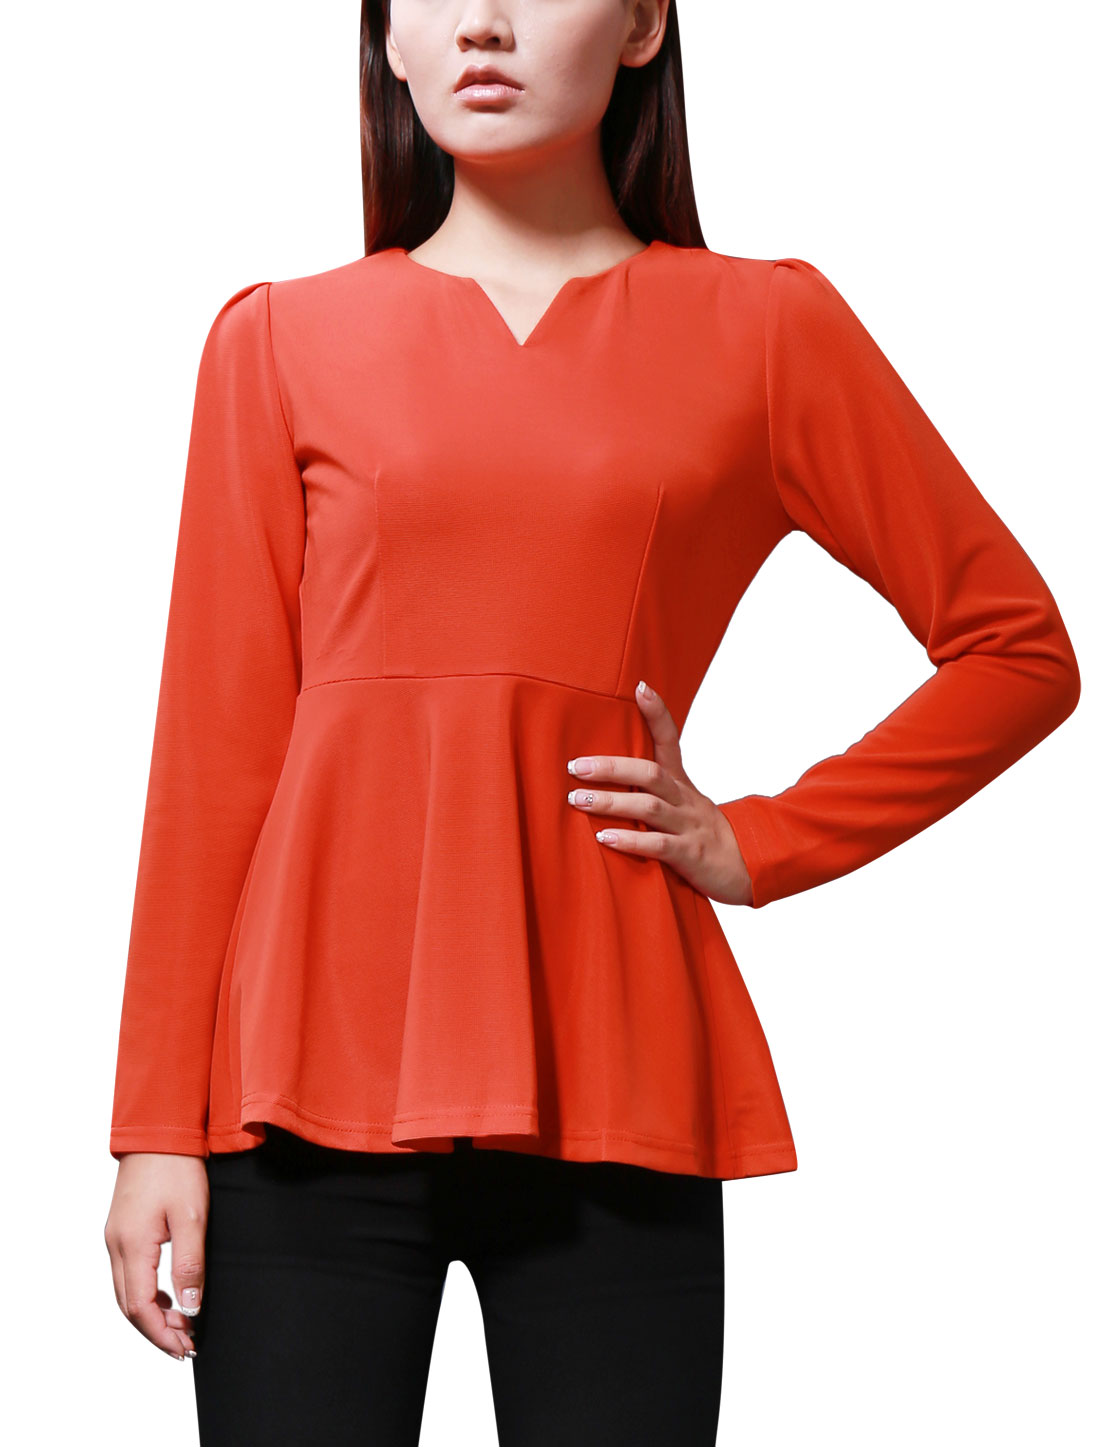 Chic Orange Color Concealed Zipper Back Closure Peplum Top for Lady XL